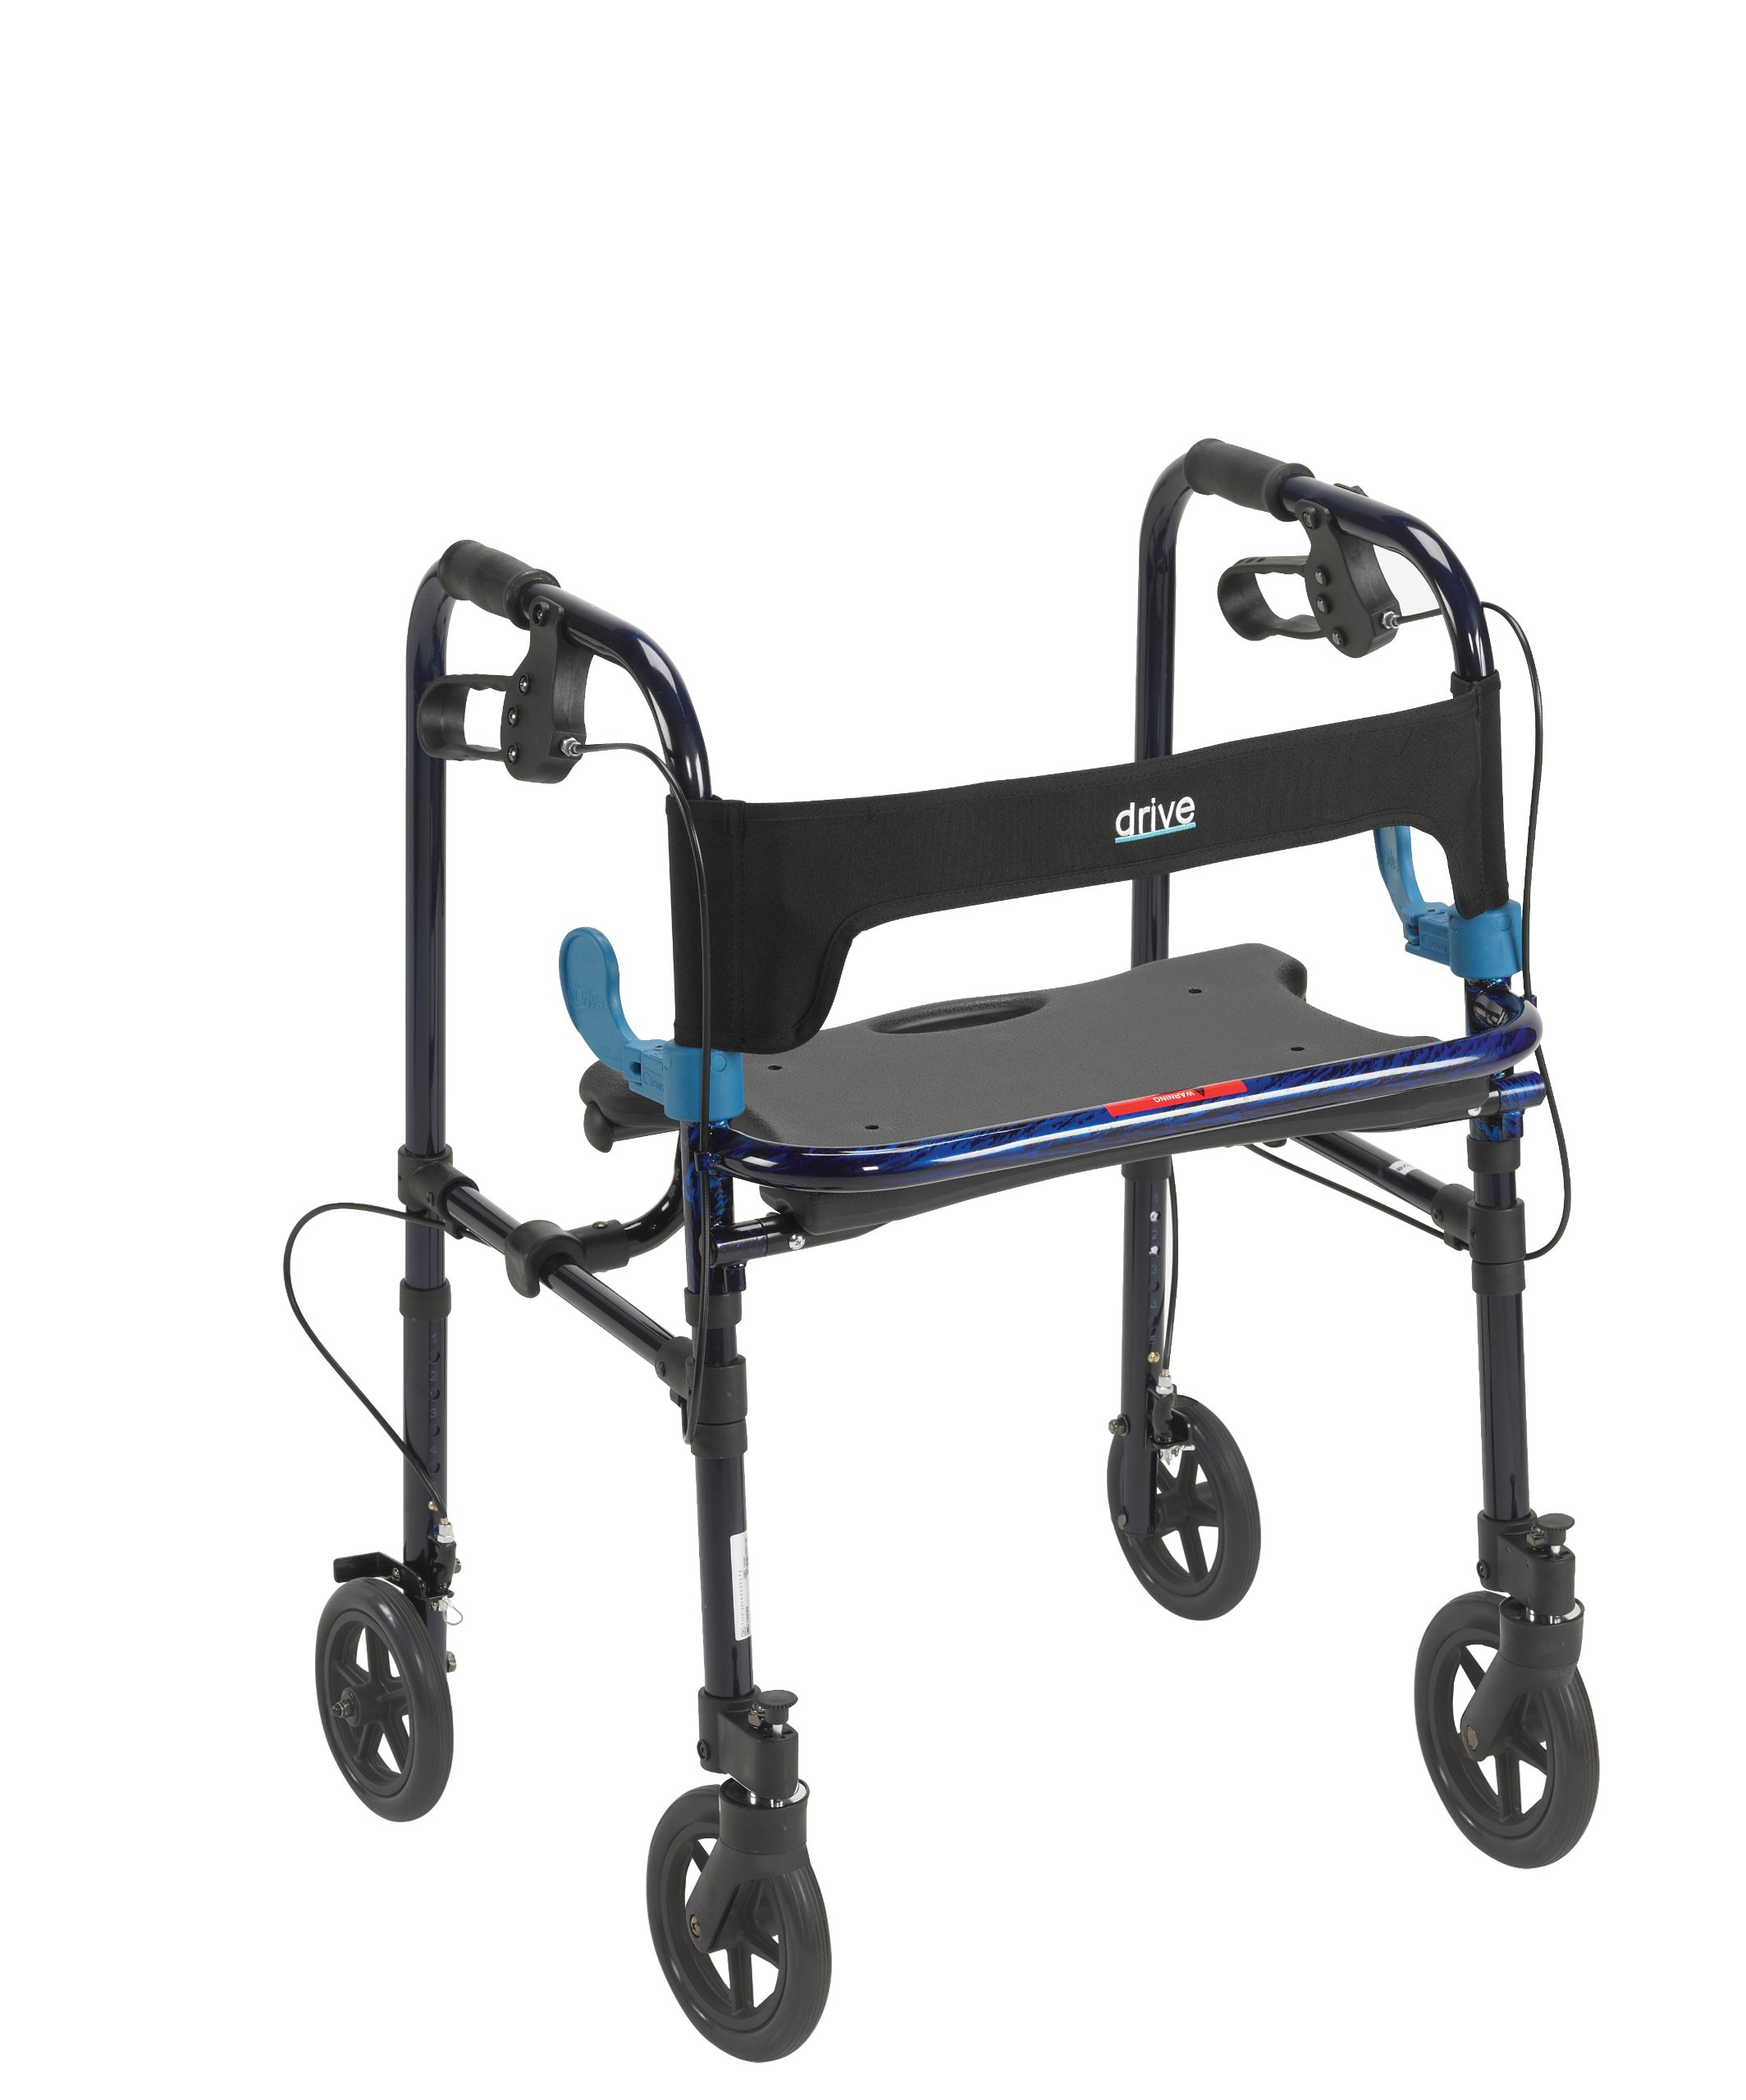 Drive Medical Deluxe Clever Lite Rollator Walker with 8'' Casters, Flame Blue, Adult by Drive Medical